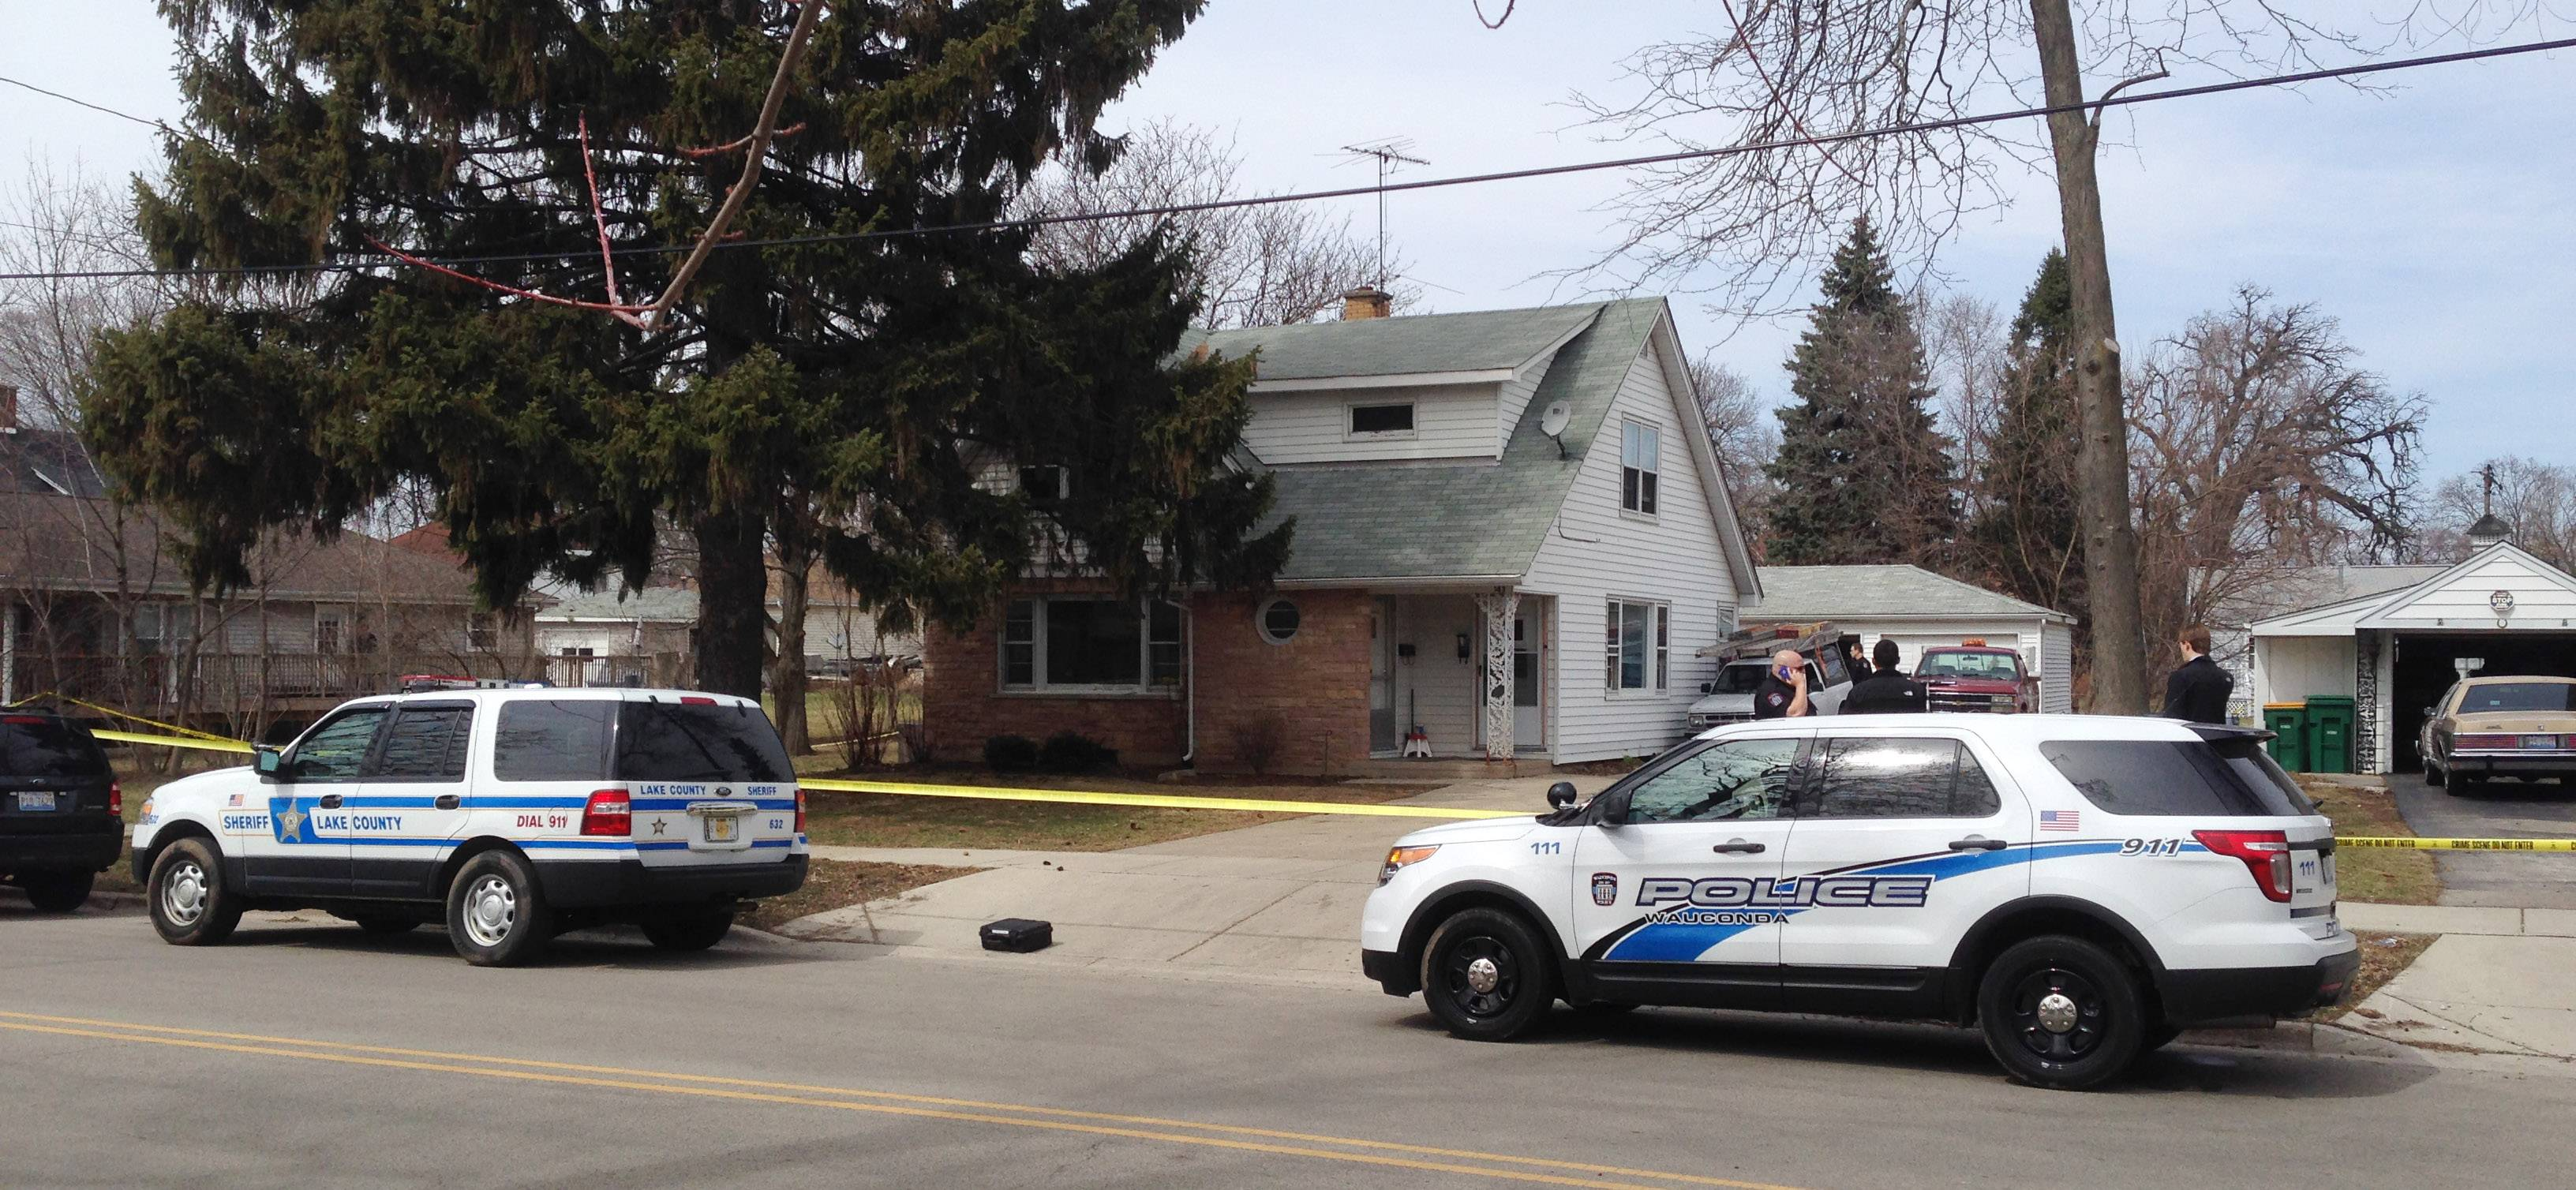 Police officials investigate a fatal, officer-involved shooting Monday on the 100 block of Slocum Lake Road in Wauconda.